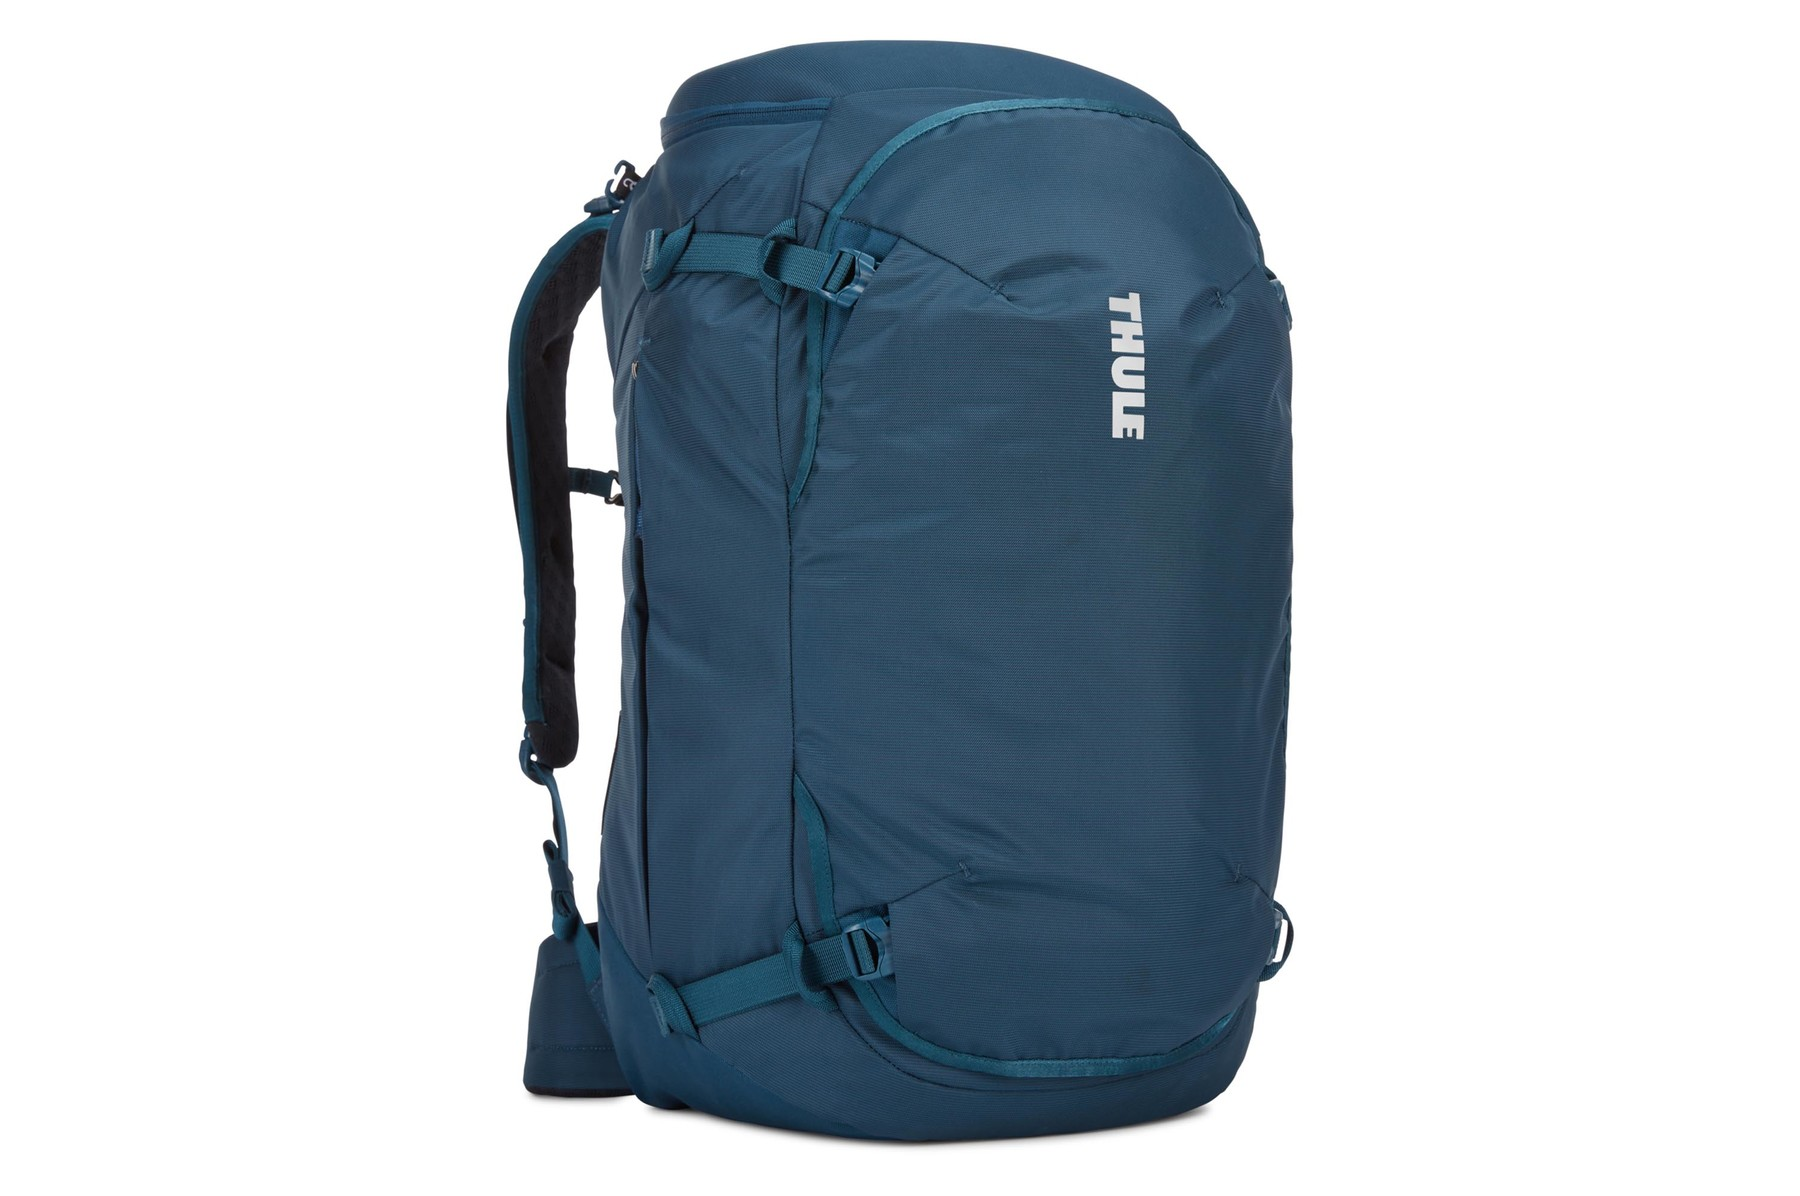 256cdac0da Backpacks · Backpacking and travel backpacks  Thule Landmark 40L Women s.  Thule Landmark 40L Majolica Blue 3203724 iso